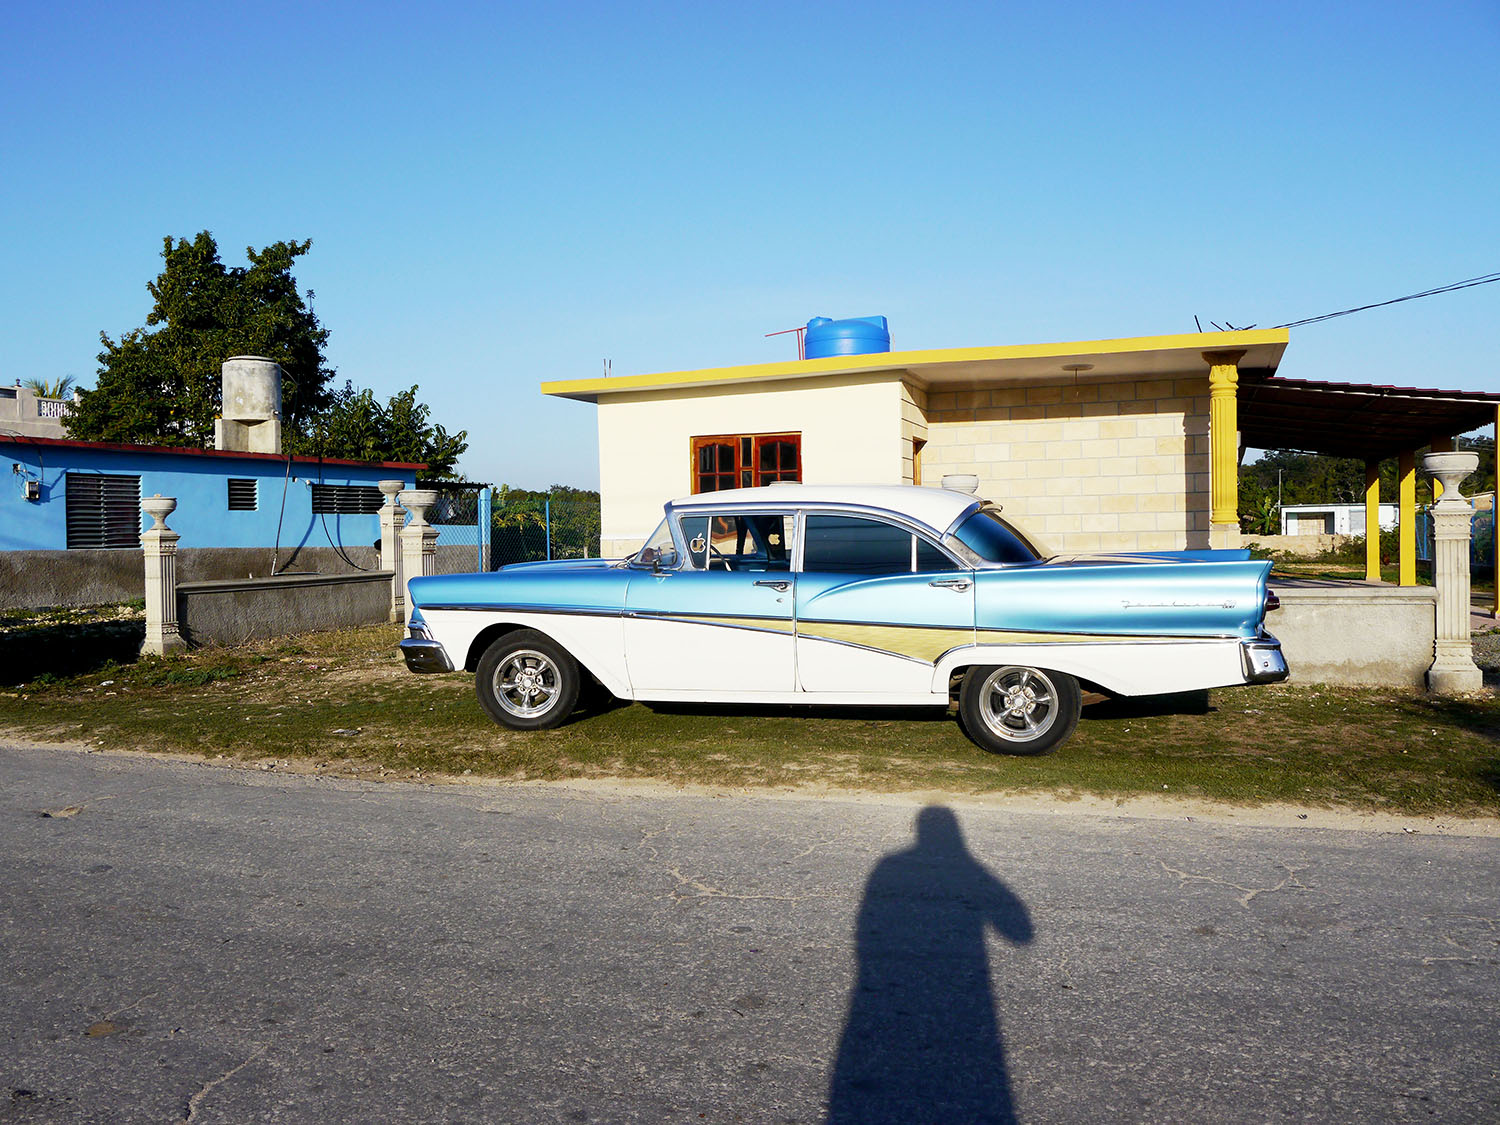 An American car from the 1950s with fins.